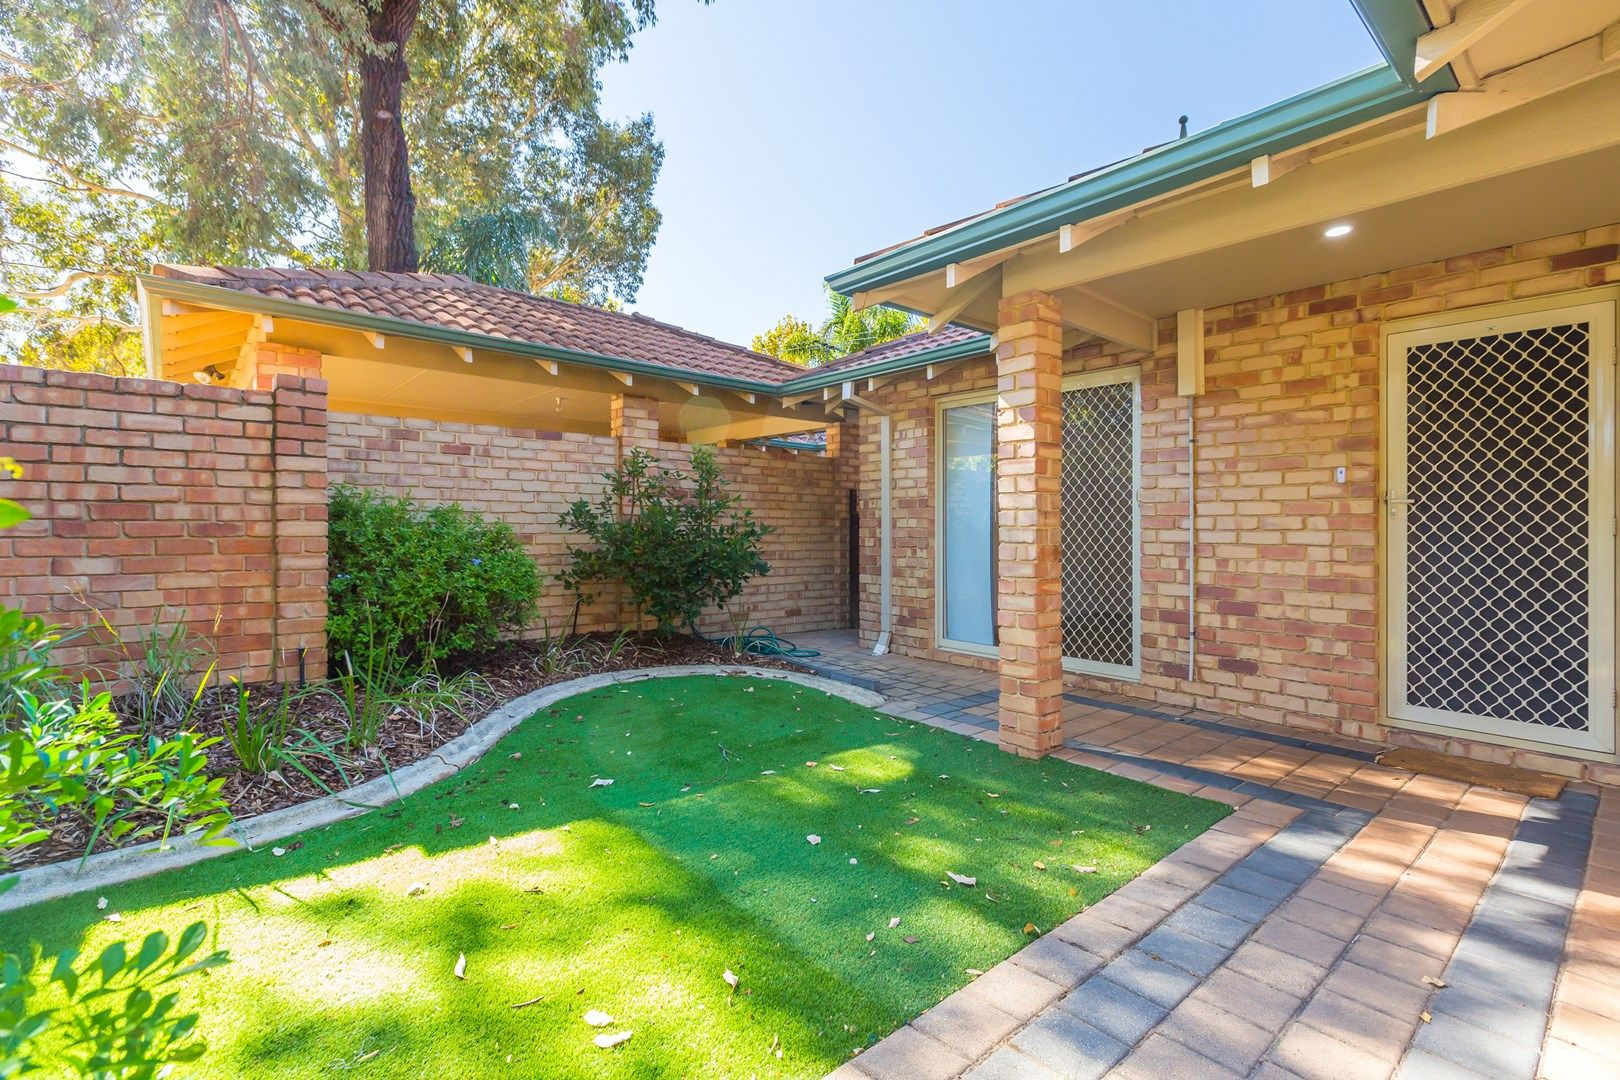 Property for rent in GOSNELLS, 4/2 Hartley Street : Attree Real Estate